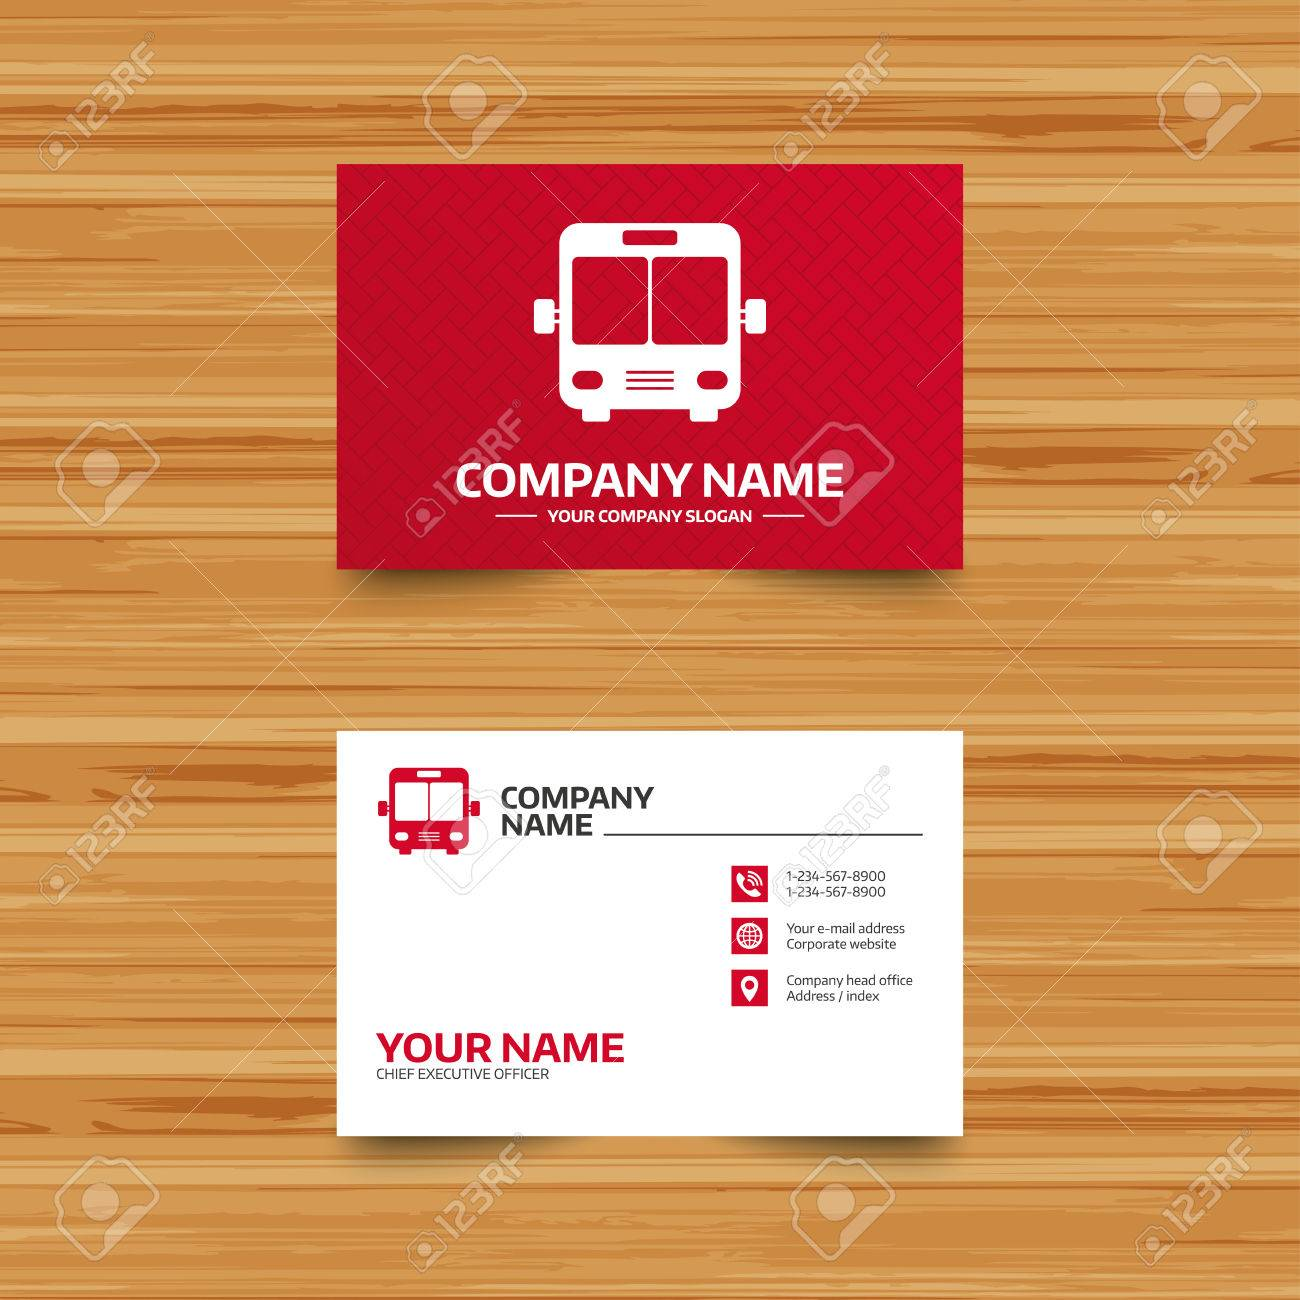 Business card template bus sign icon public transport symbol business card template bus sign icon public transport symbol phone globe and fbccfo Images